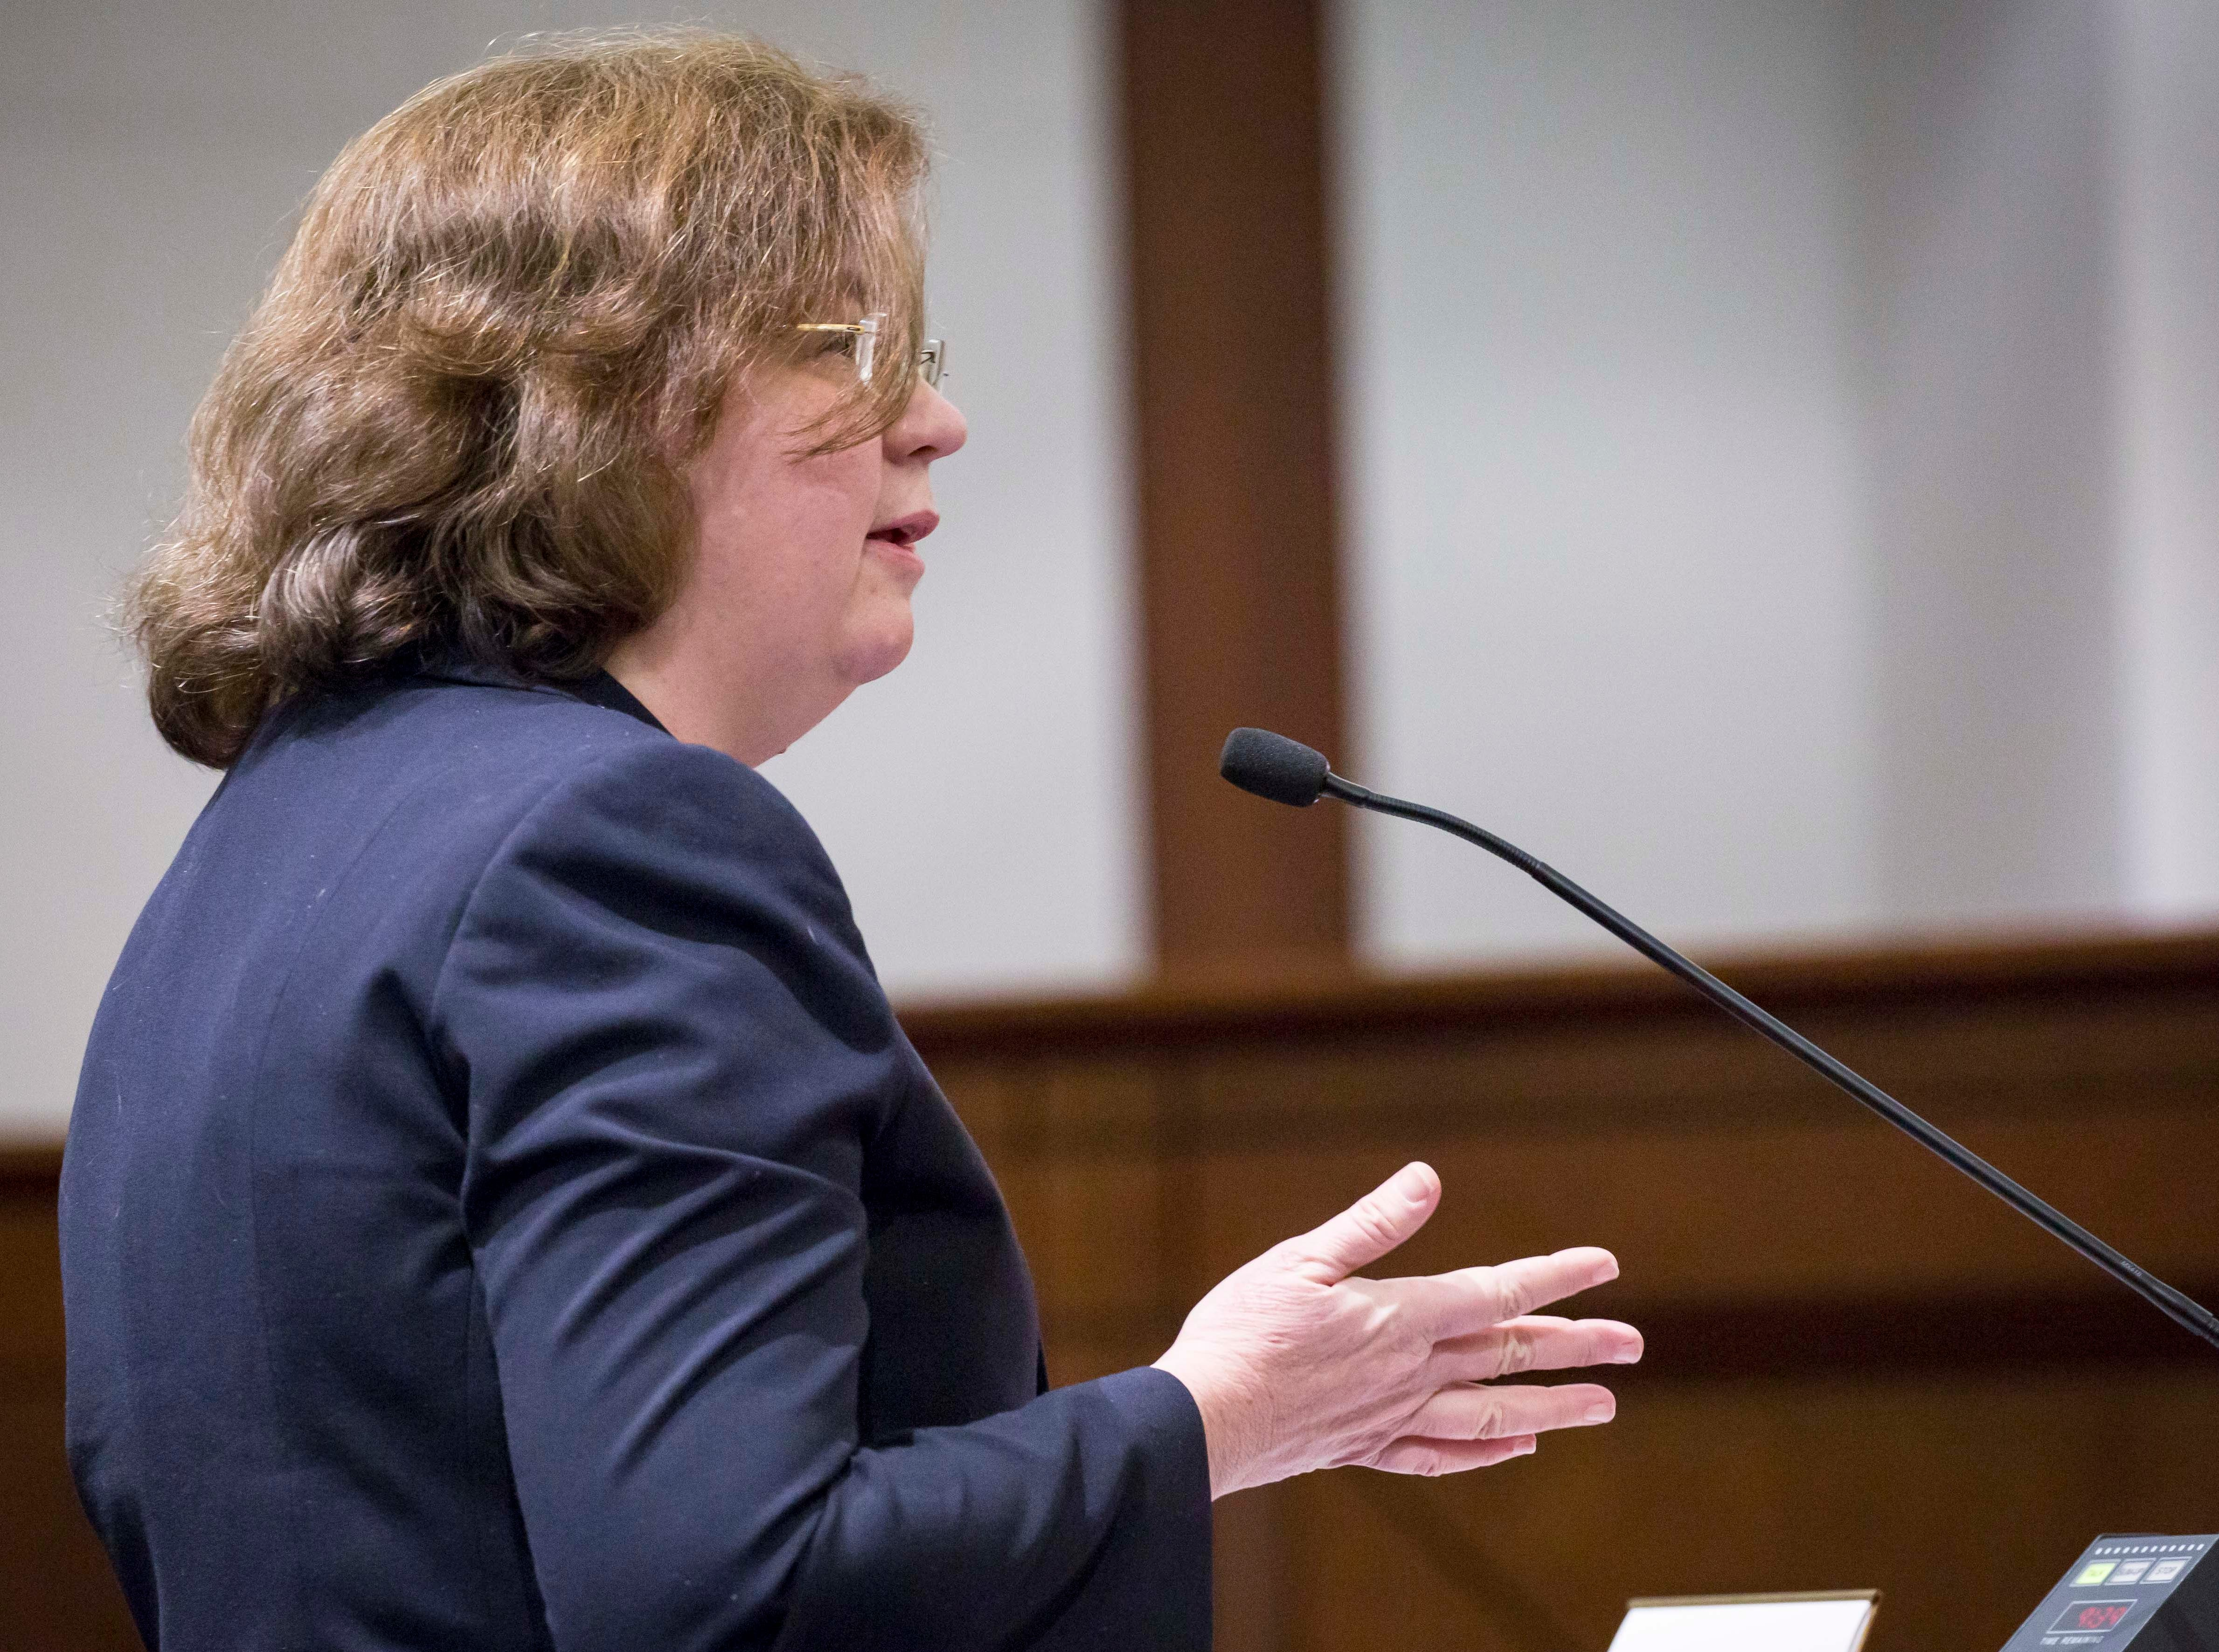 Attorney Alice O'Brian speaks to the Iowa Supreme Court as they hear arguments in two challenges to Iowa's collective bargaining law change last year. The challenges are from AFSCME and the Iowa State Education Association at the Judicial Building Wednesday, Dec. 12, 2018, in Des Moines, Iowa.